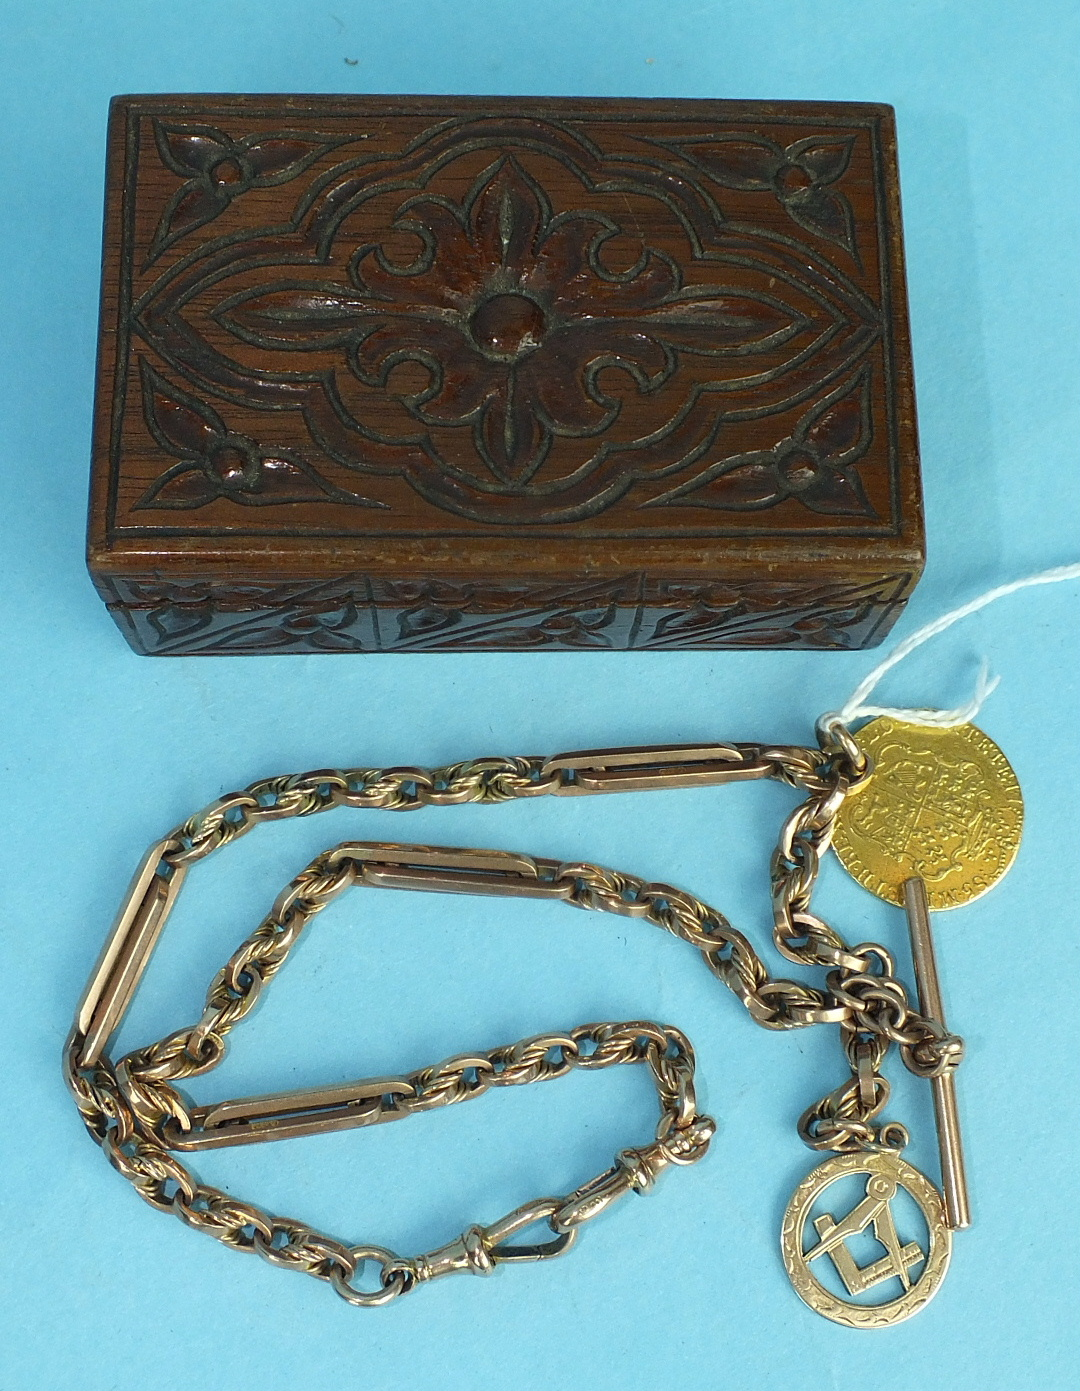 Lot 203 - A 9ct rose gold Albert watch chain with Masonic fob and 1785 guinea, (holed), total weight 58g, in